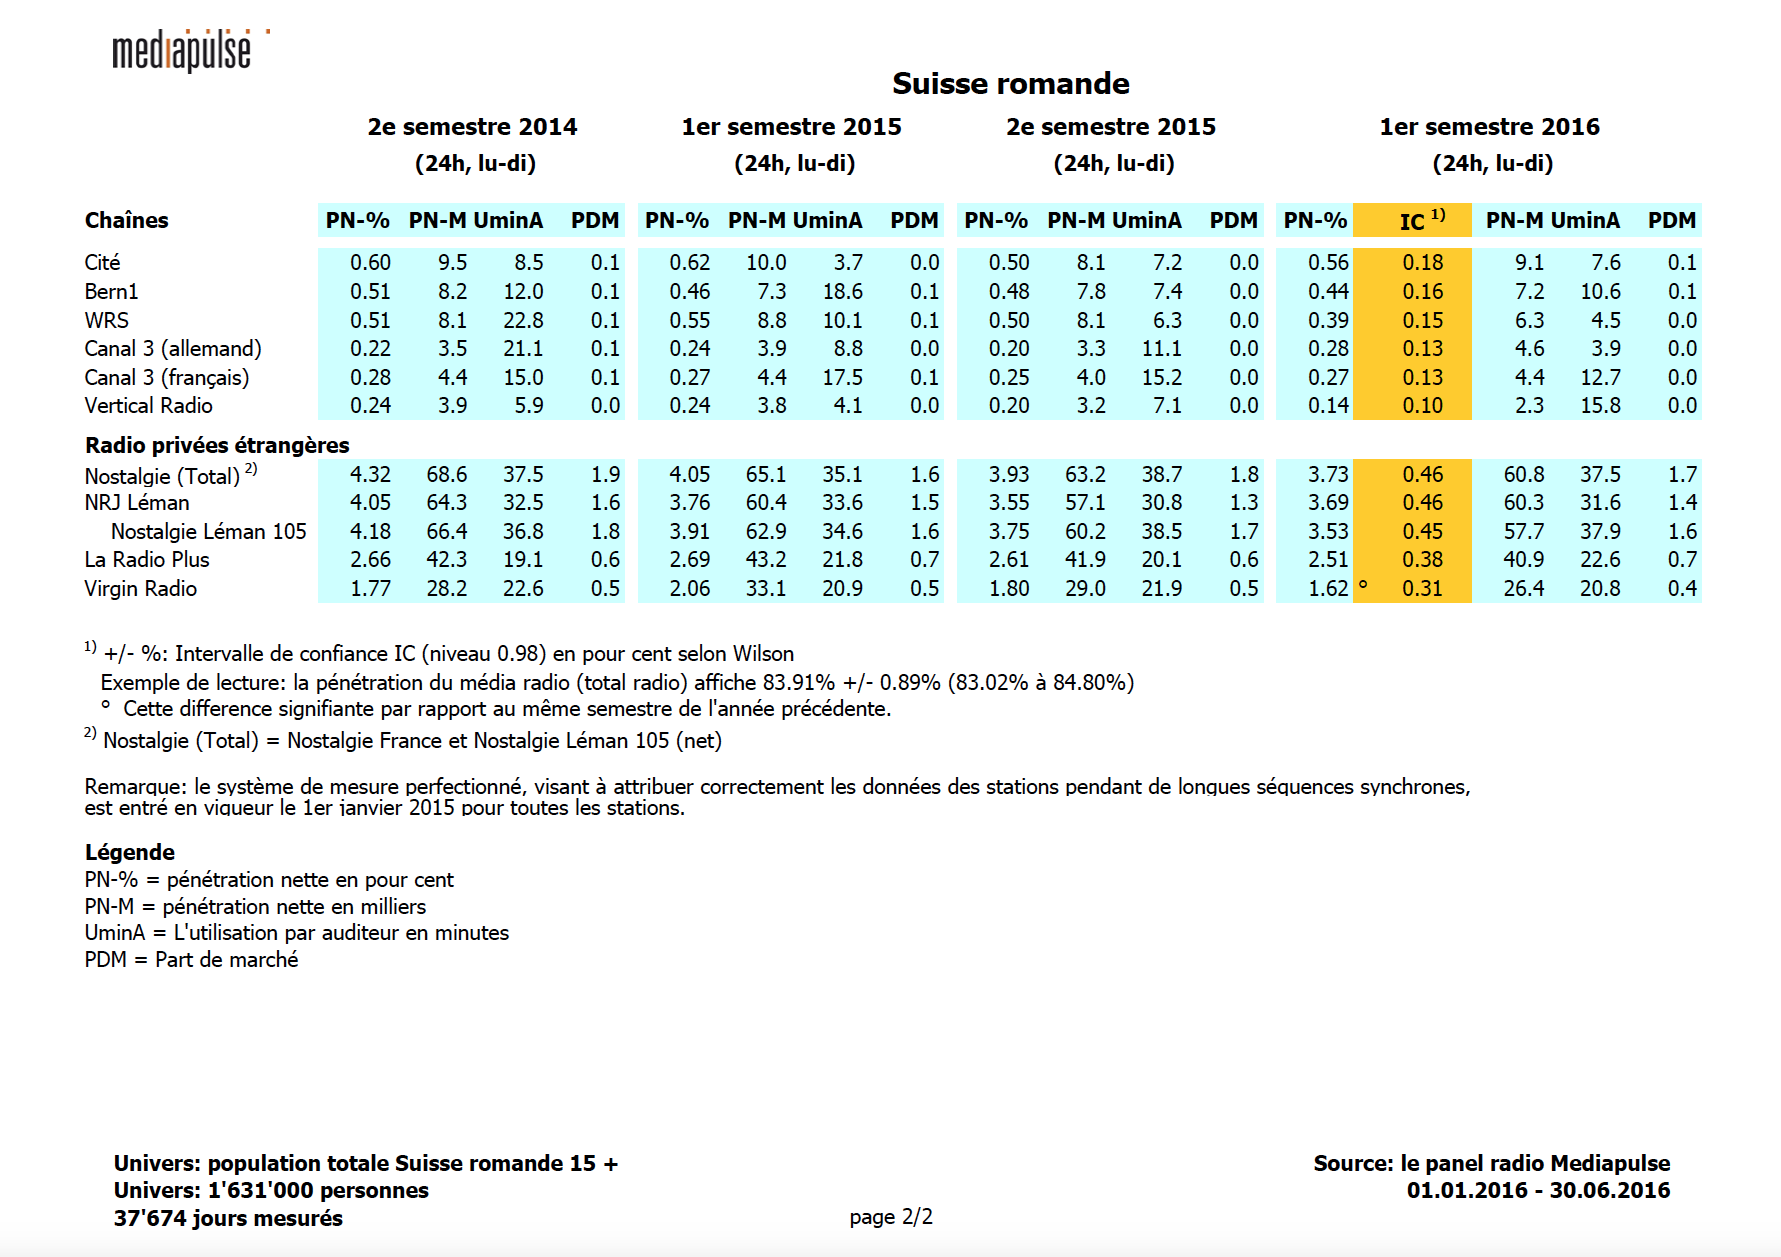 Source : Panel radio Mediapulse, DS/SR/SI, personnes 15+, total radio, 1er semestre 2016, lundi à dimanche 24 h